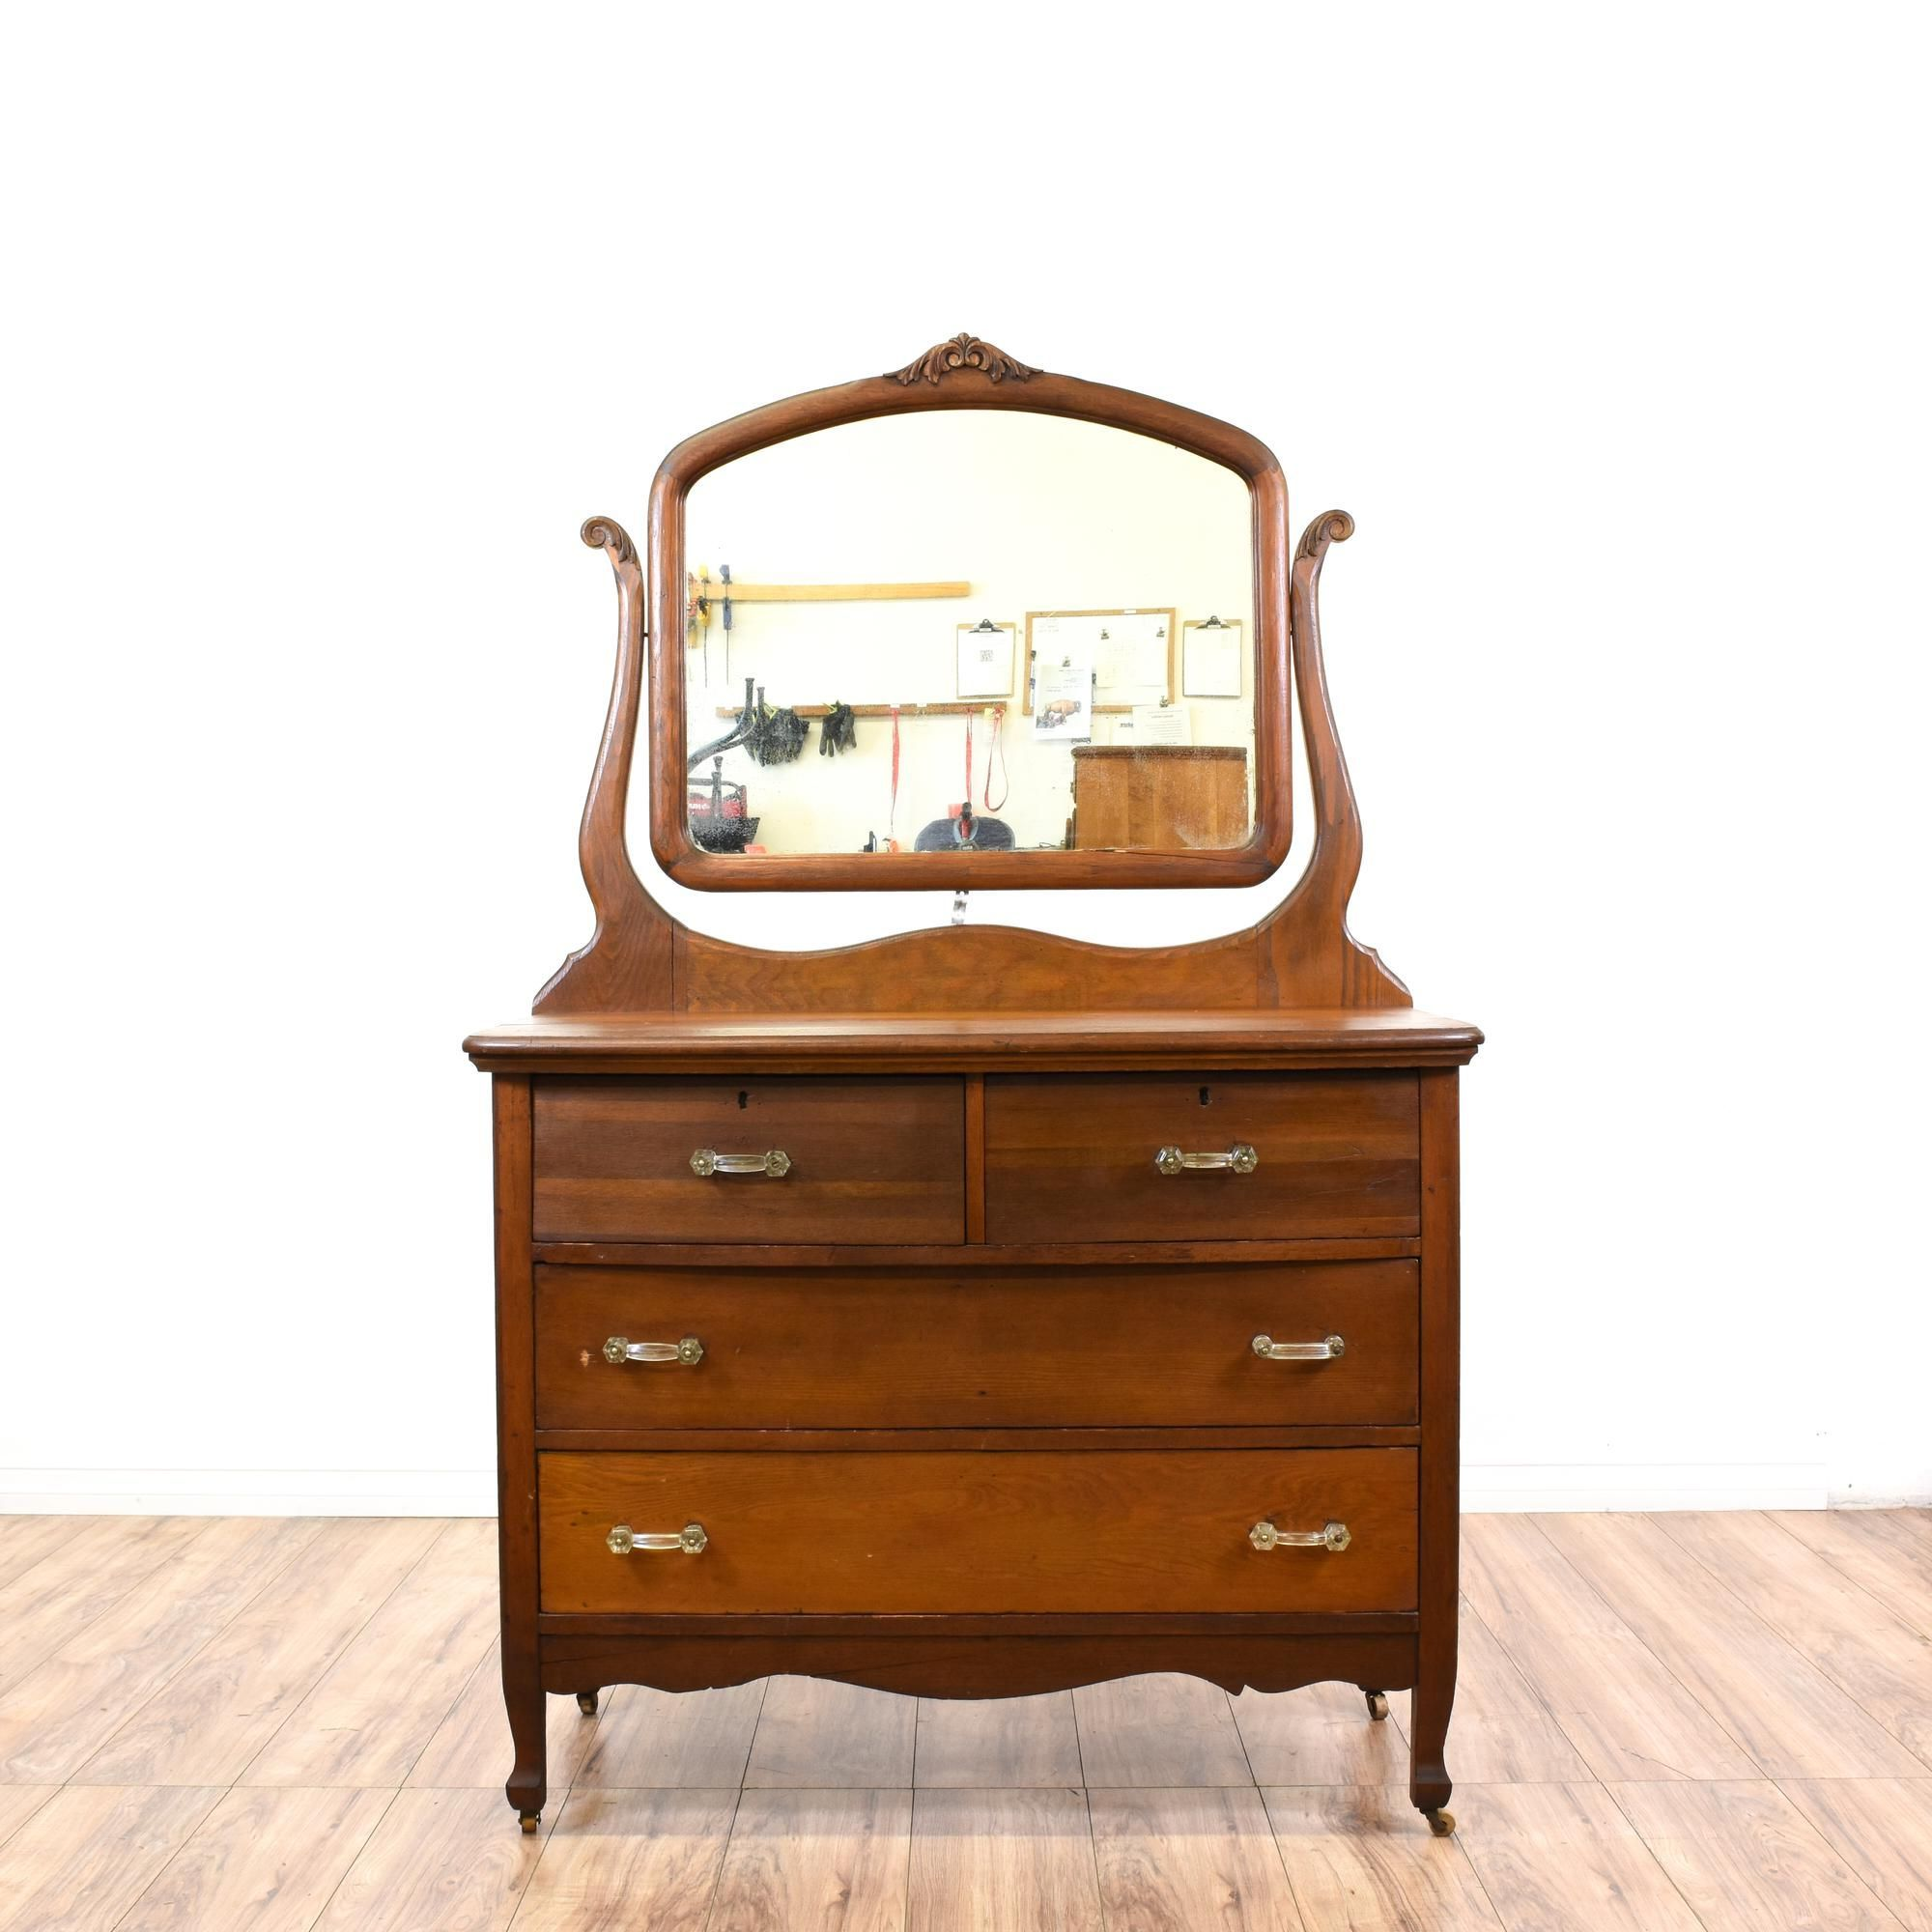 ikea ideas mirror dresser with vanity